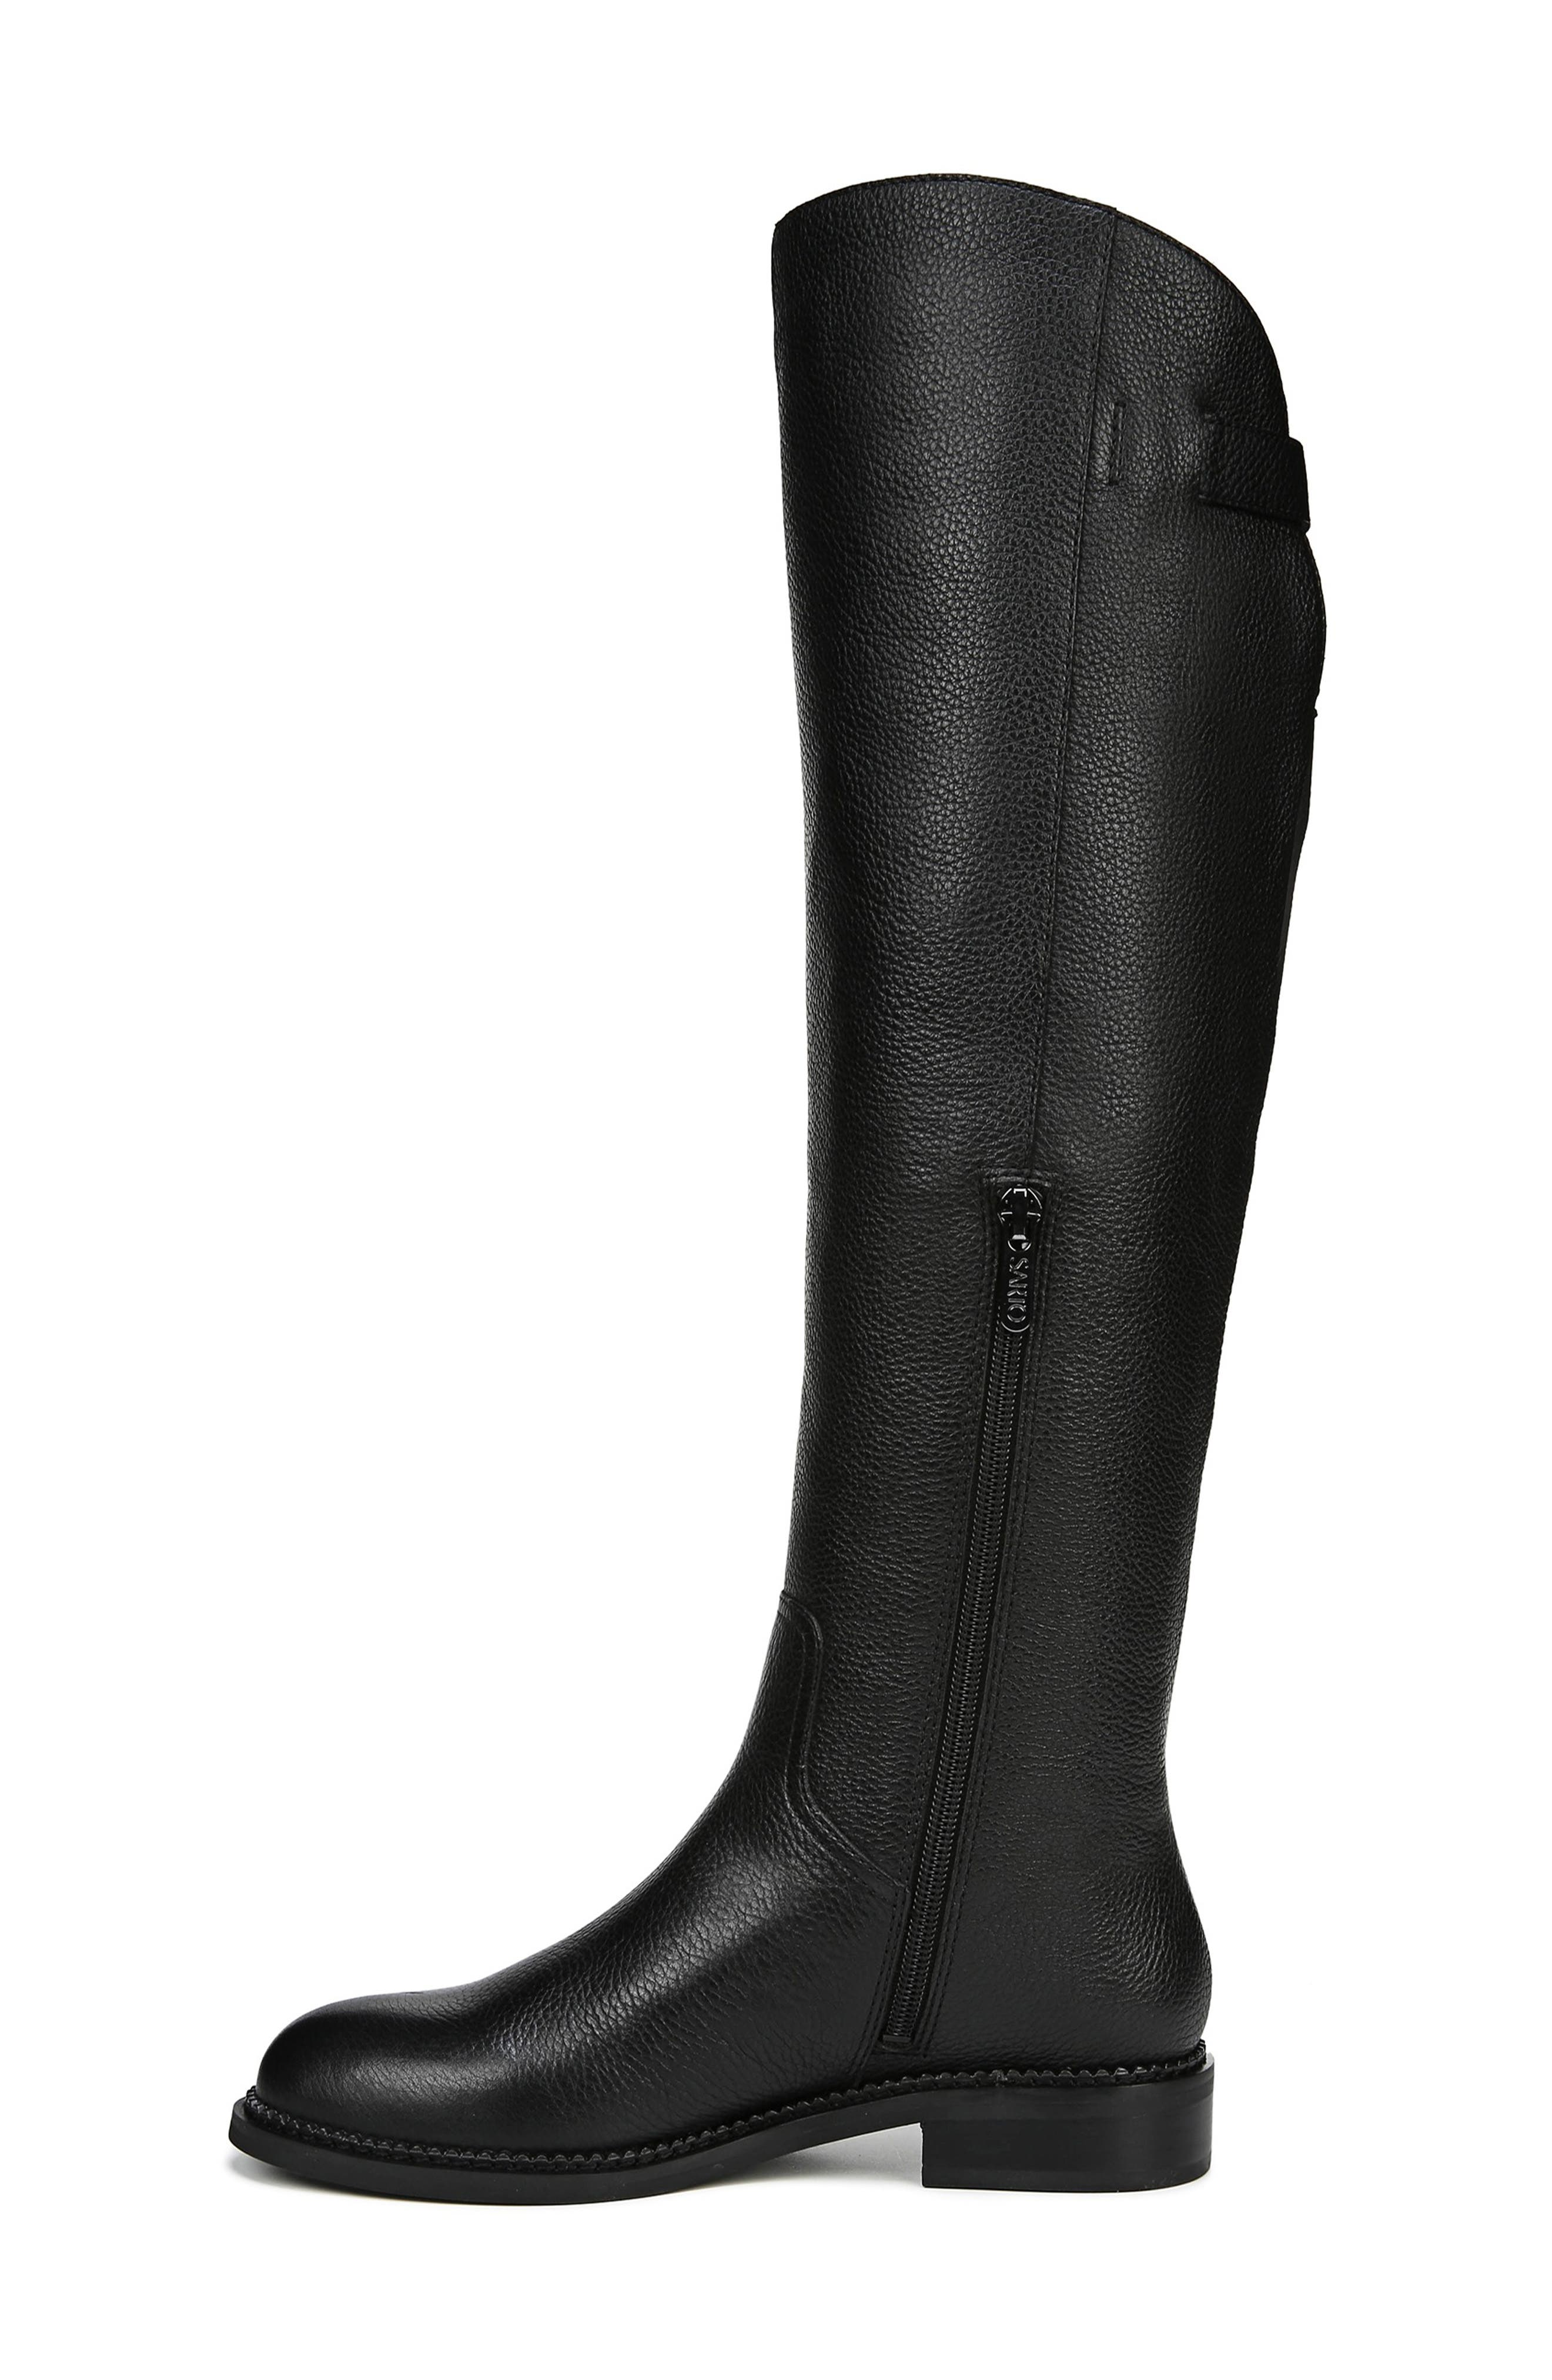 Halloway Knee High Boot,                             Alternate thumbnail 9, color,                             BLACK LEATHER